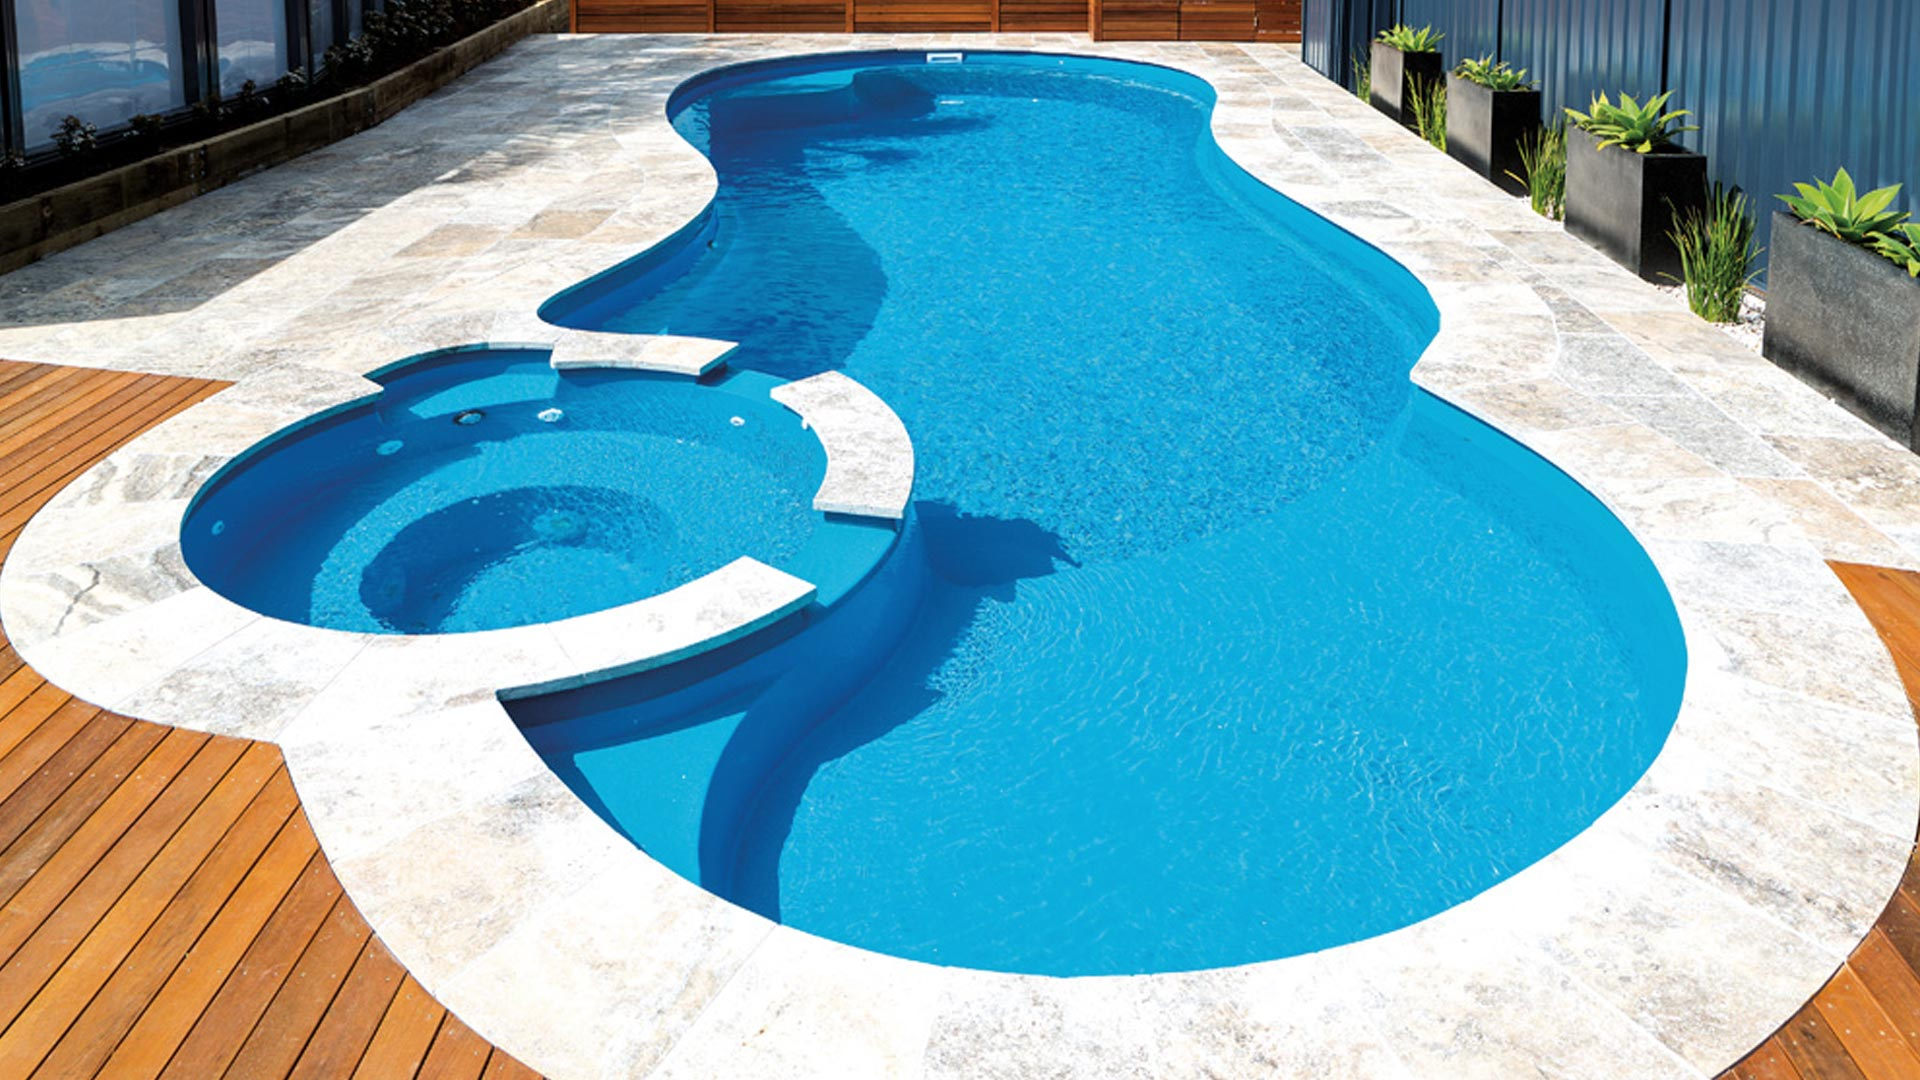 Pool Design: The Beauty of a Combination of Features | Leisure Pools USA